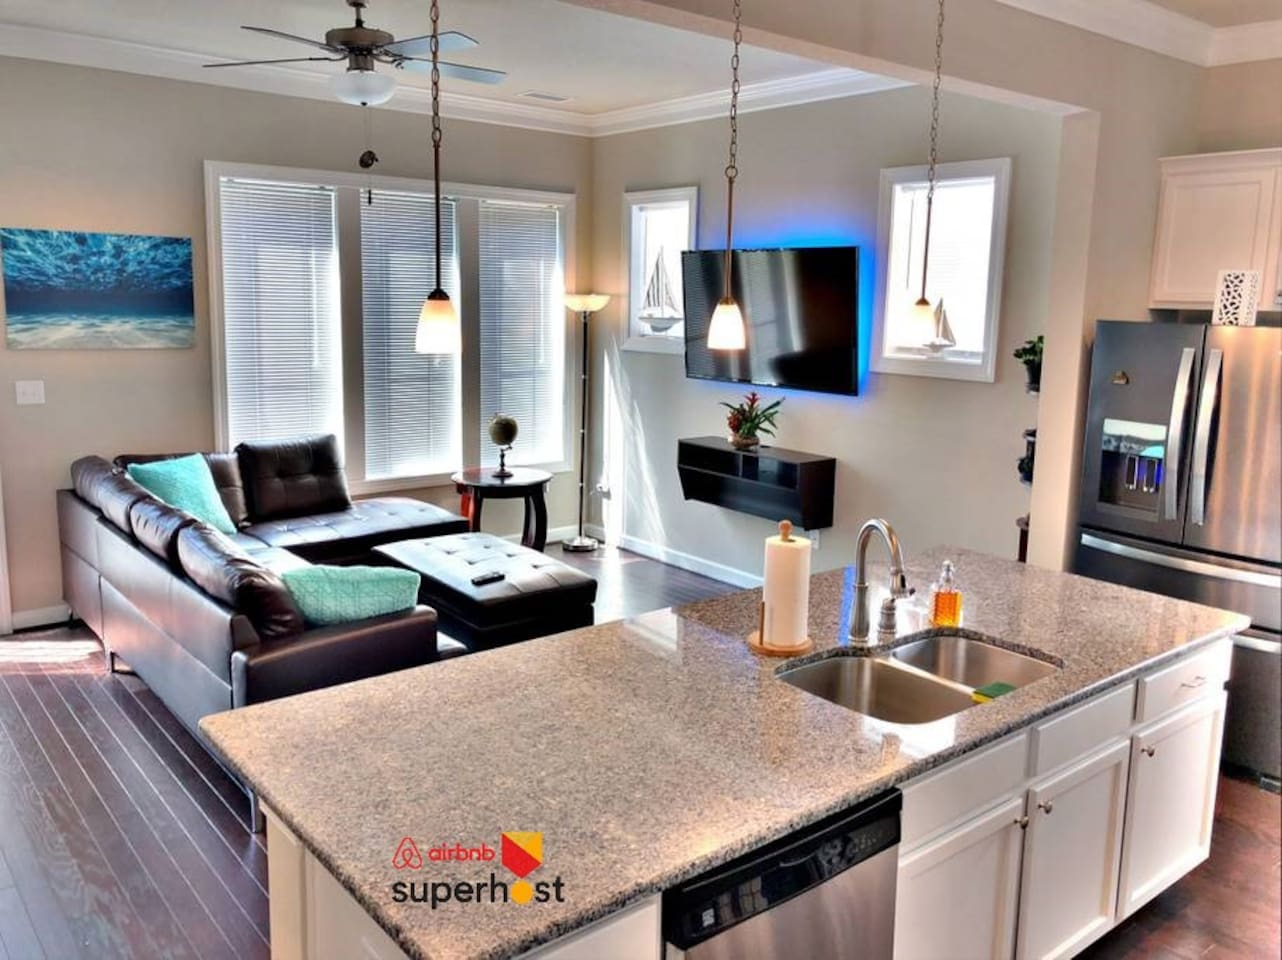 Chic, bright, and fresh living spaces offer a great place for a drink or two before walking down to a live entertainment venue down the street, or watching a movie after a long day on the beach.